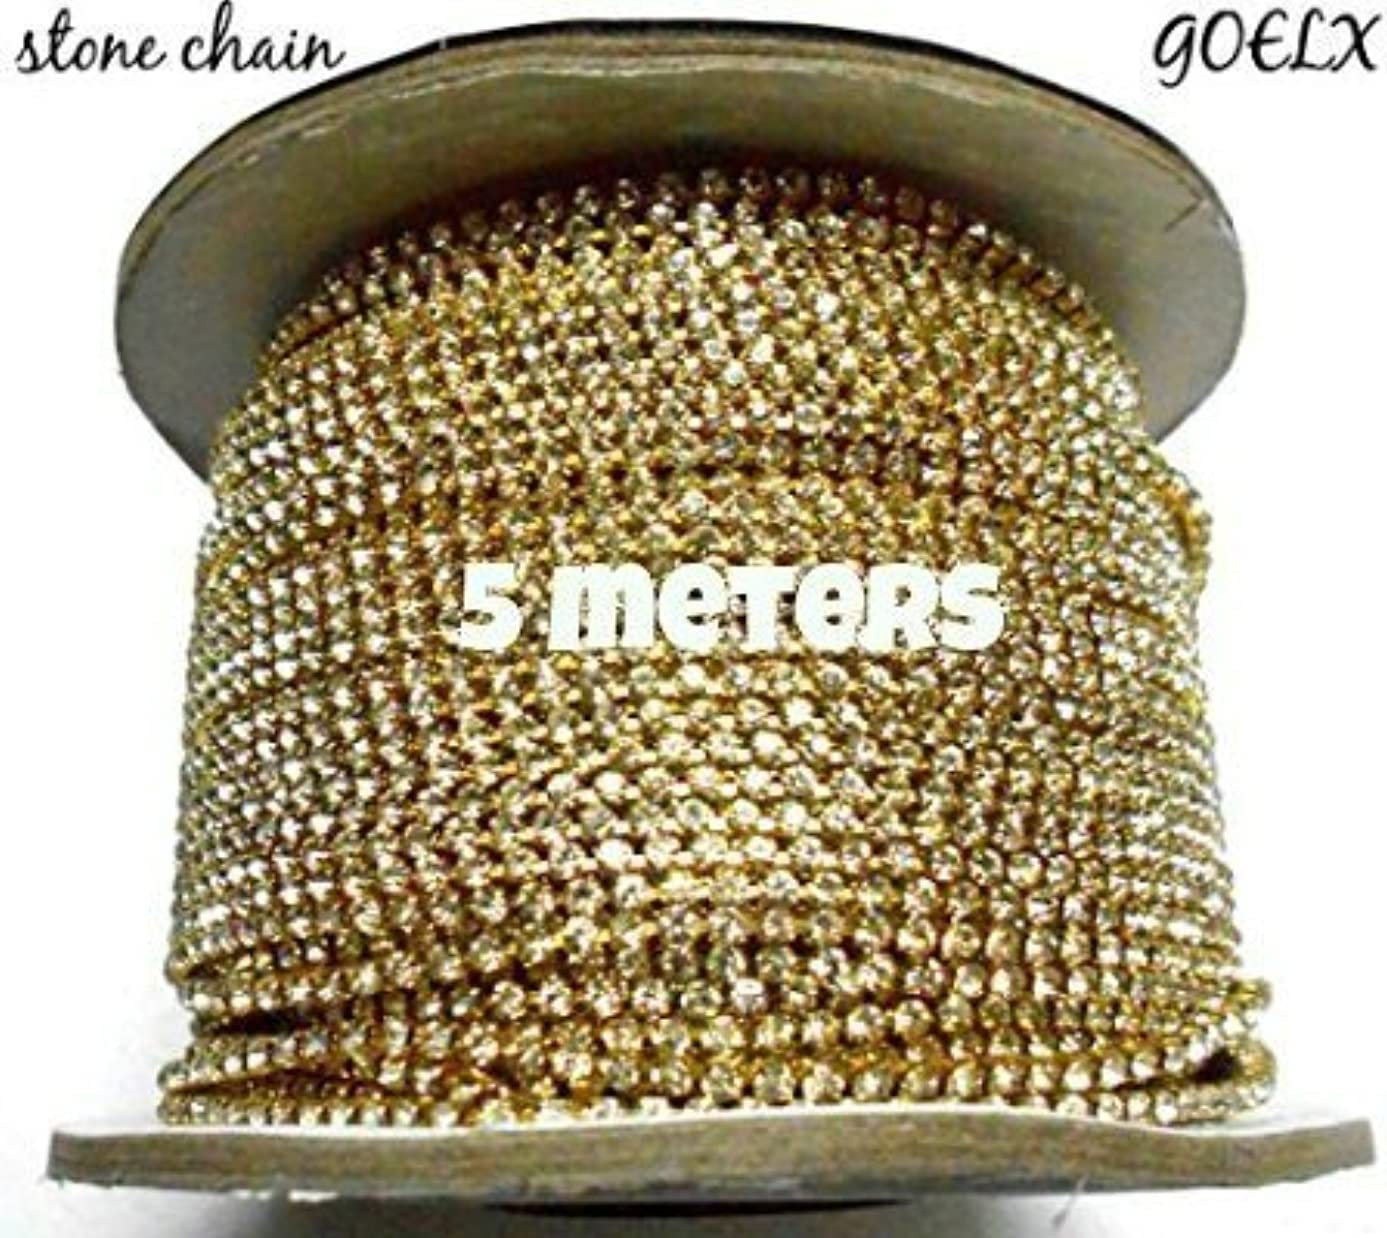 GOELX Rhinestone Chain crystal chain for Jewellery Making, decorations,craft works Pack Of 5 Yards